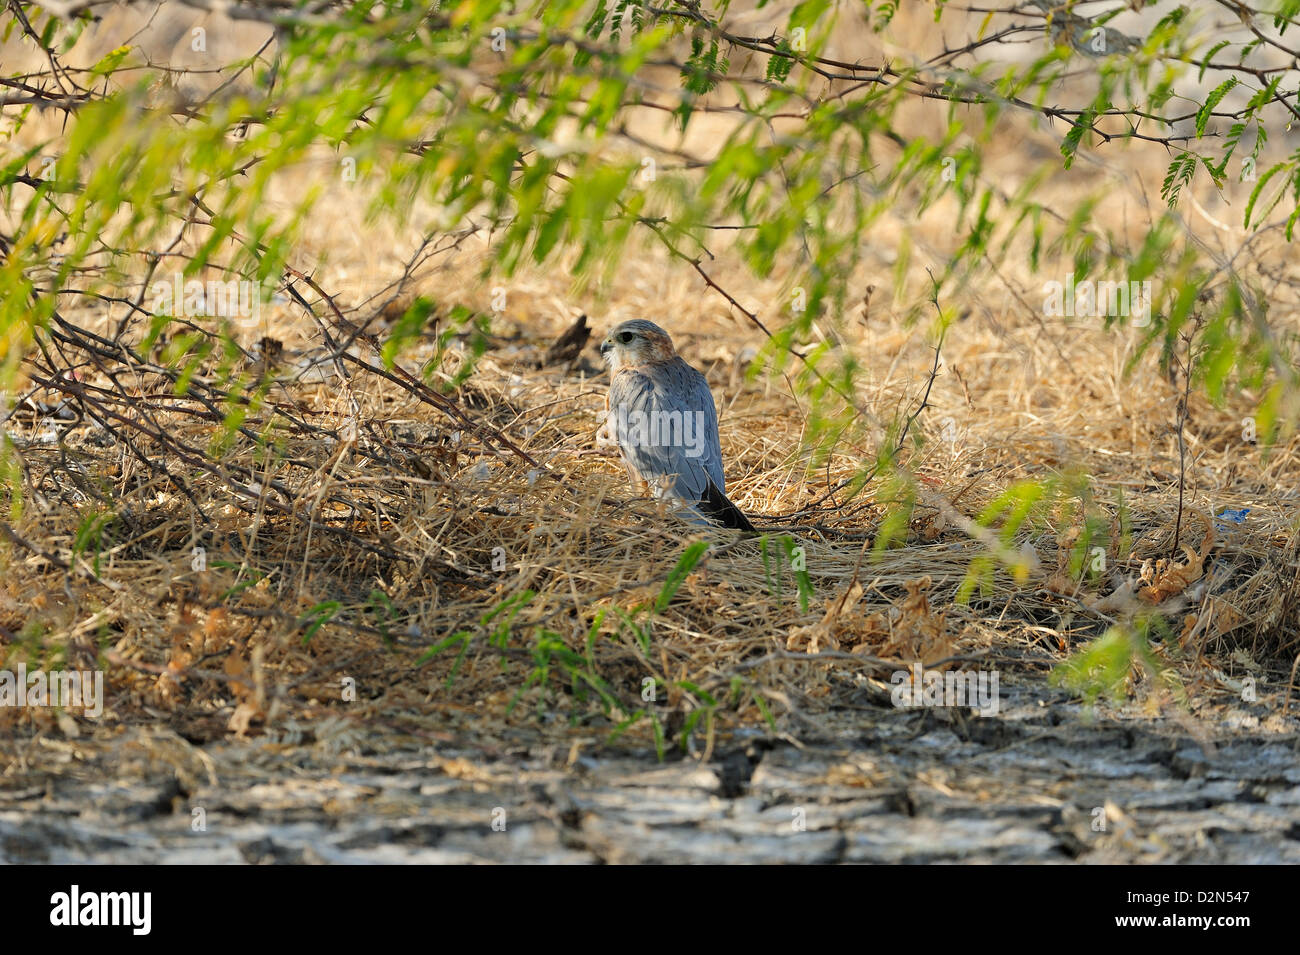 Merlin, a critically endangered bird in Little Rann of Kutch, Gujarat, India, Asia - Stock Image